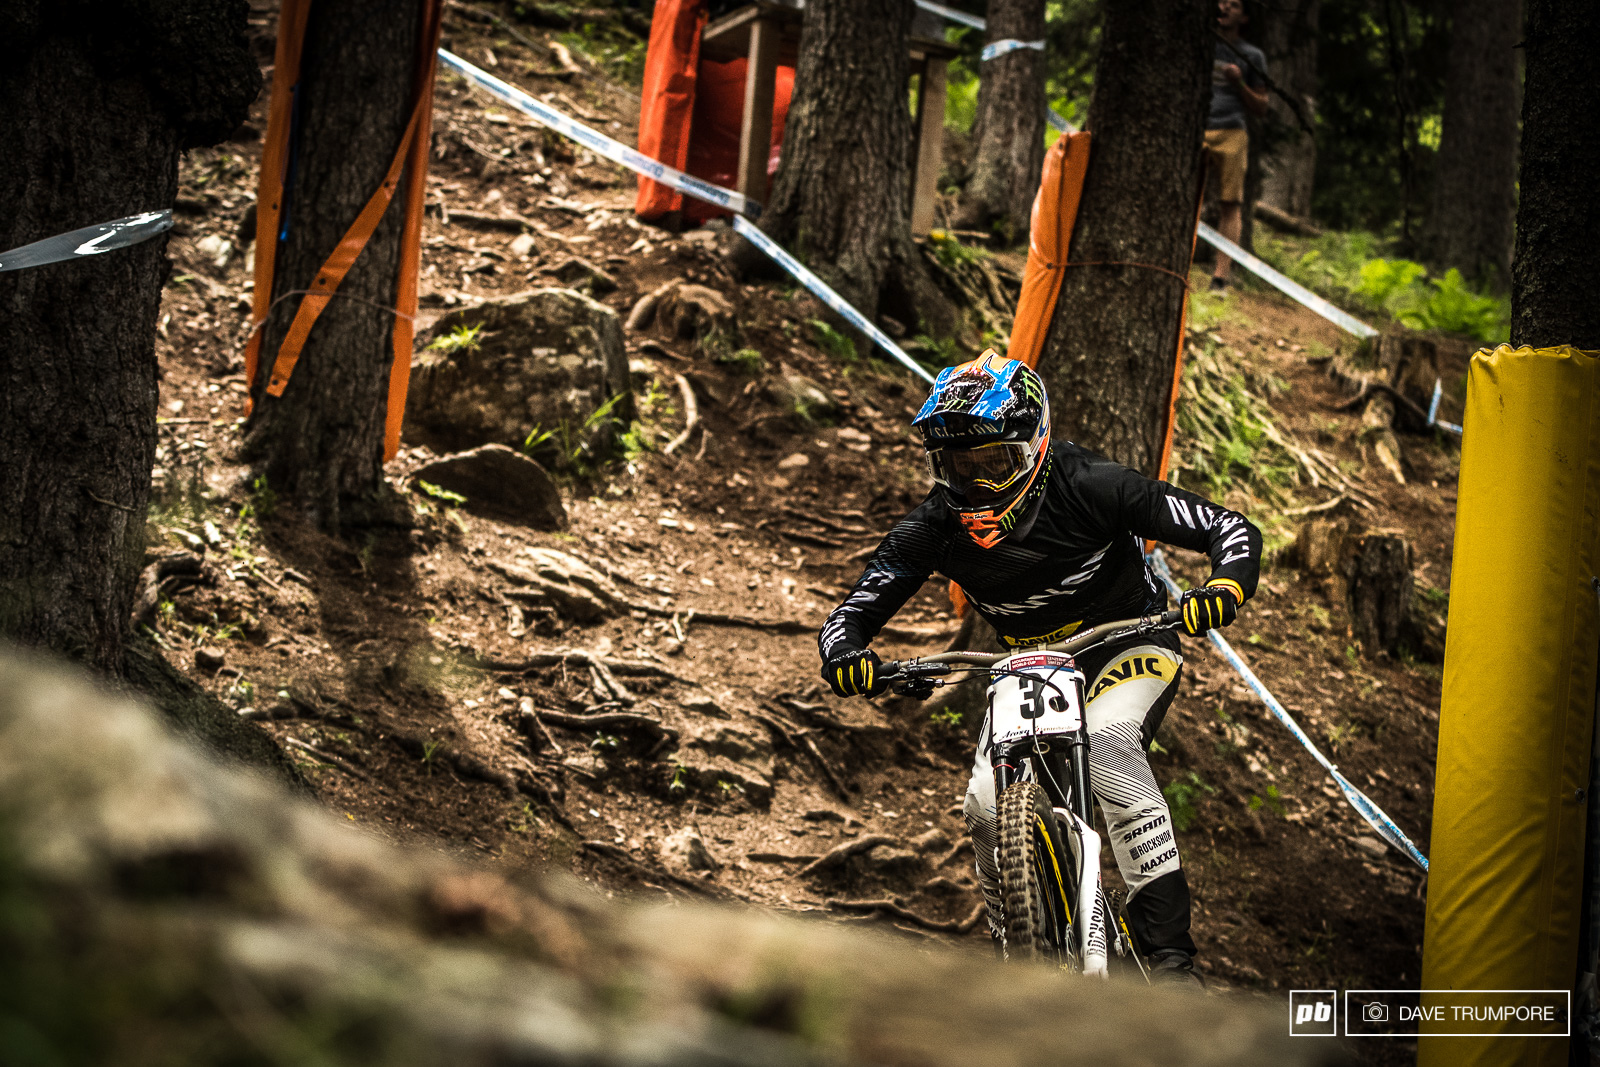 Last weeks winner Troy Brosnan was on a charge this week in Lenzerheide and with his 2nd place finish he now sit s 2nd in the overall behind Greg Minnaar.